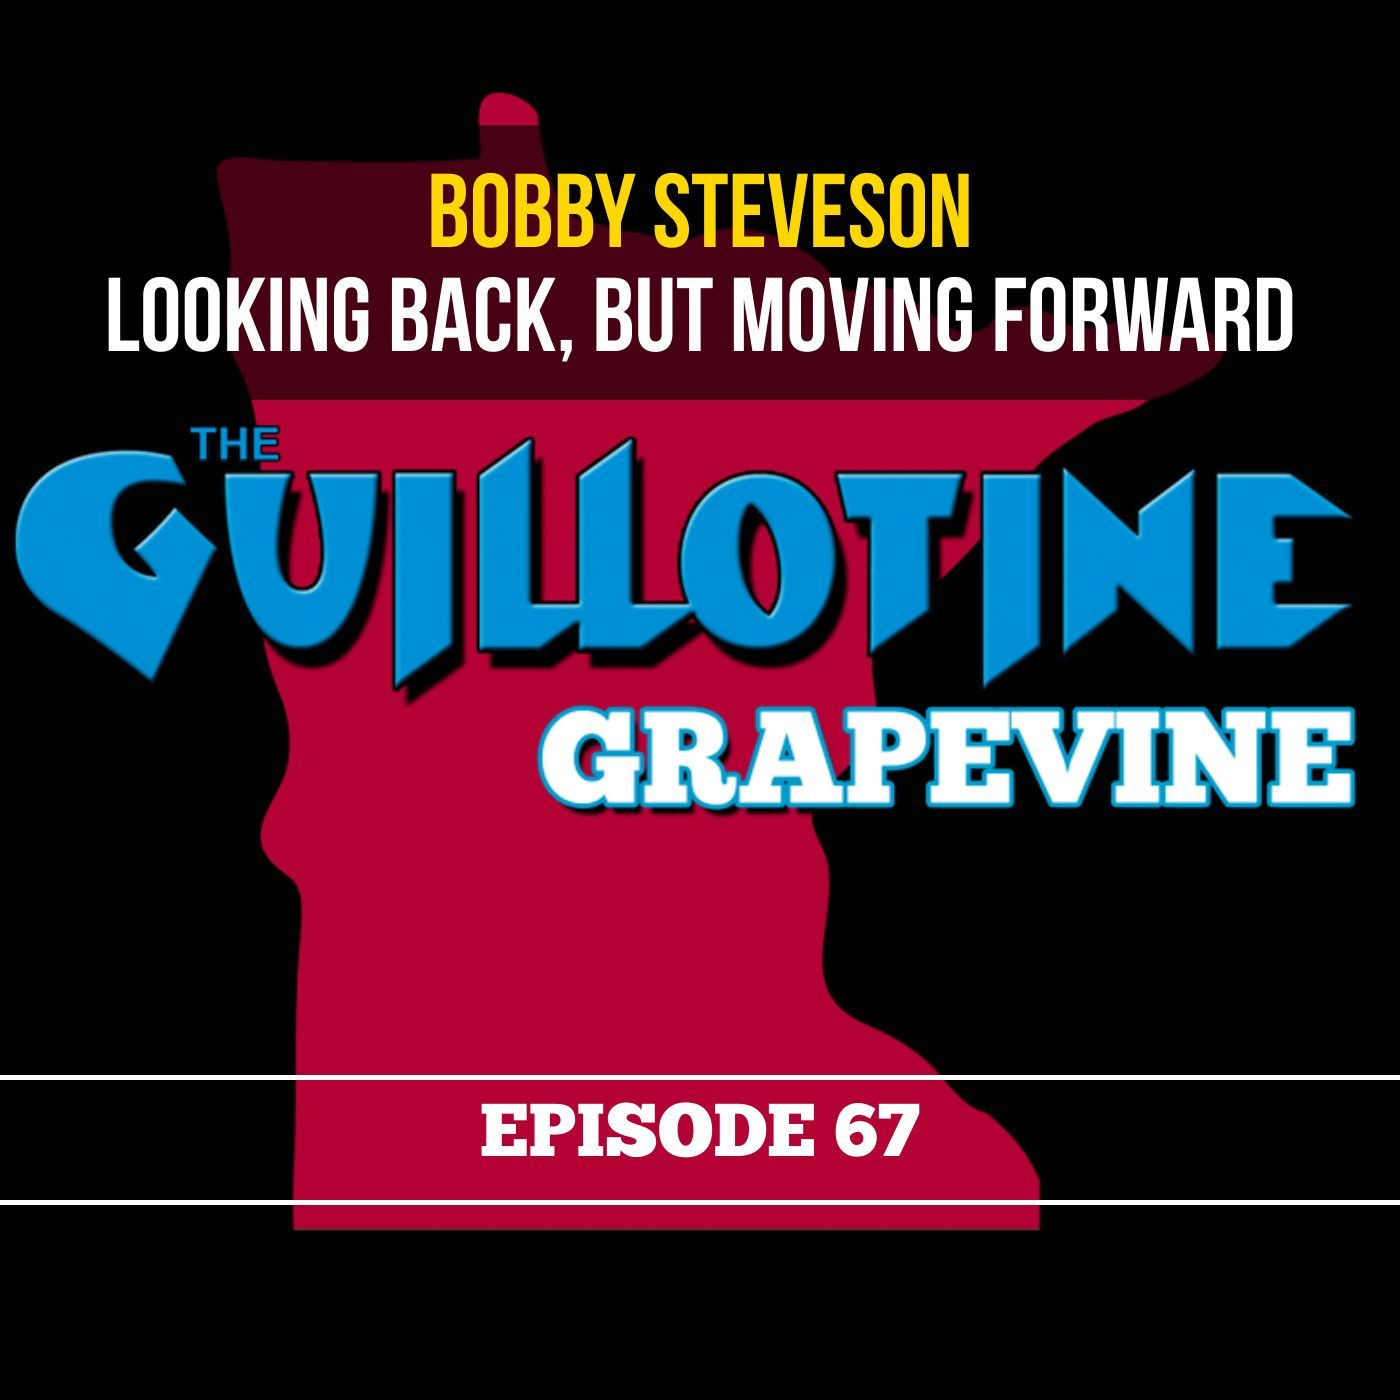 Gopher graduate Bobby Steveson talking life, wrestling and what's next - GG67